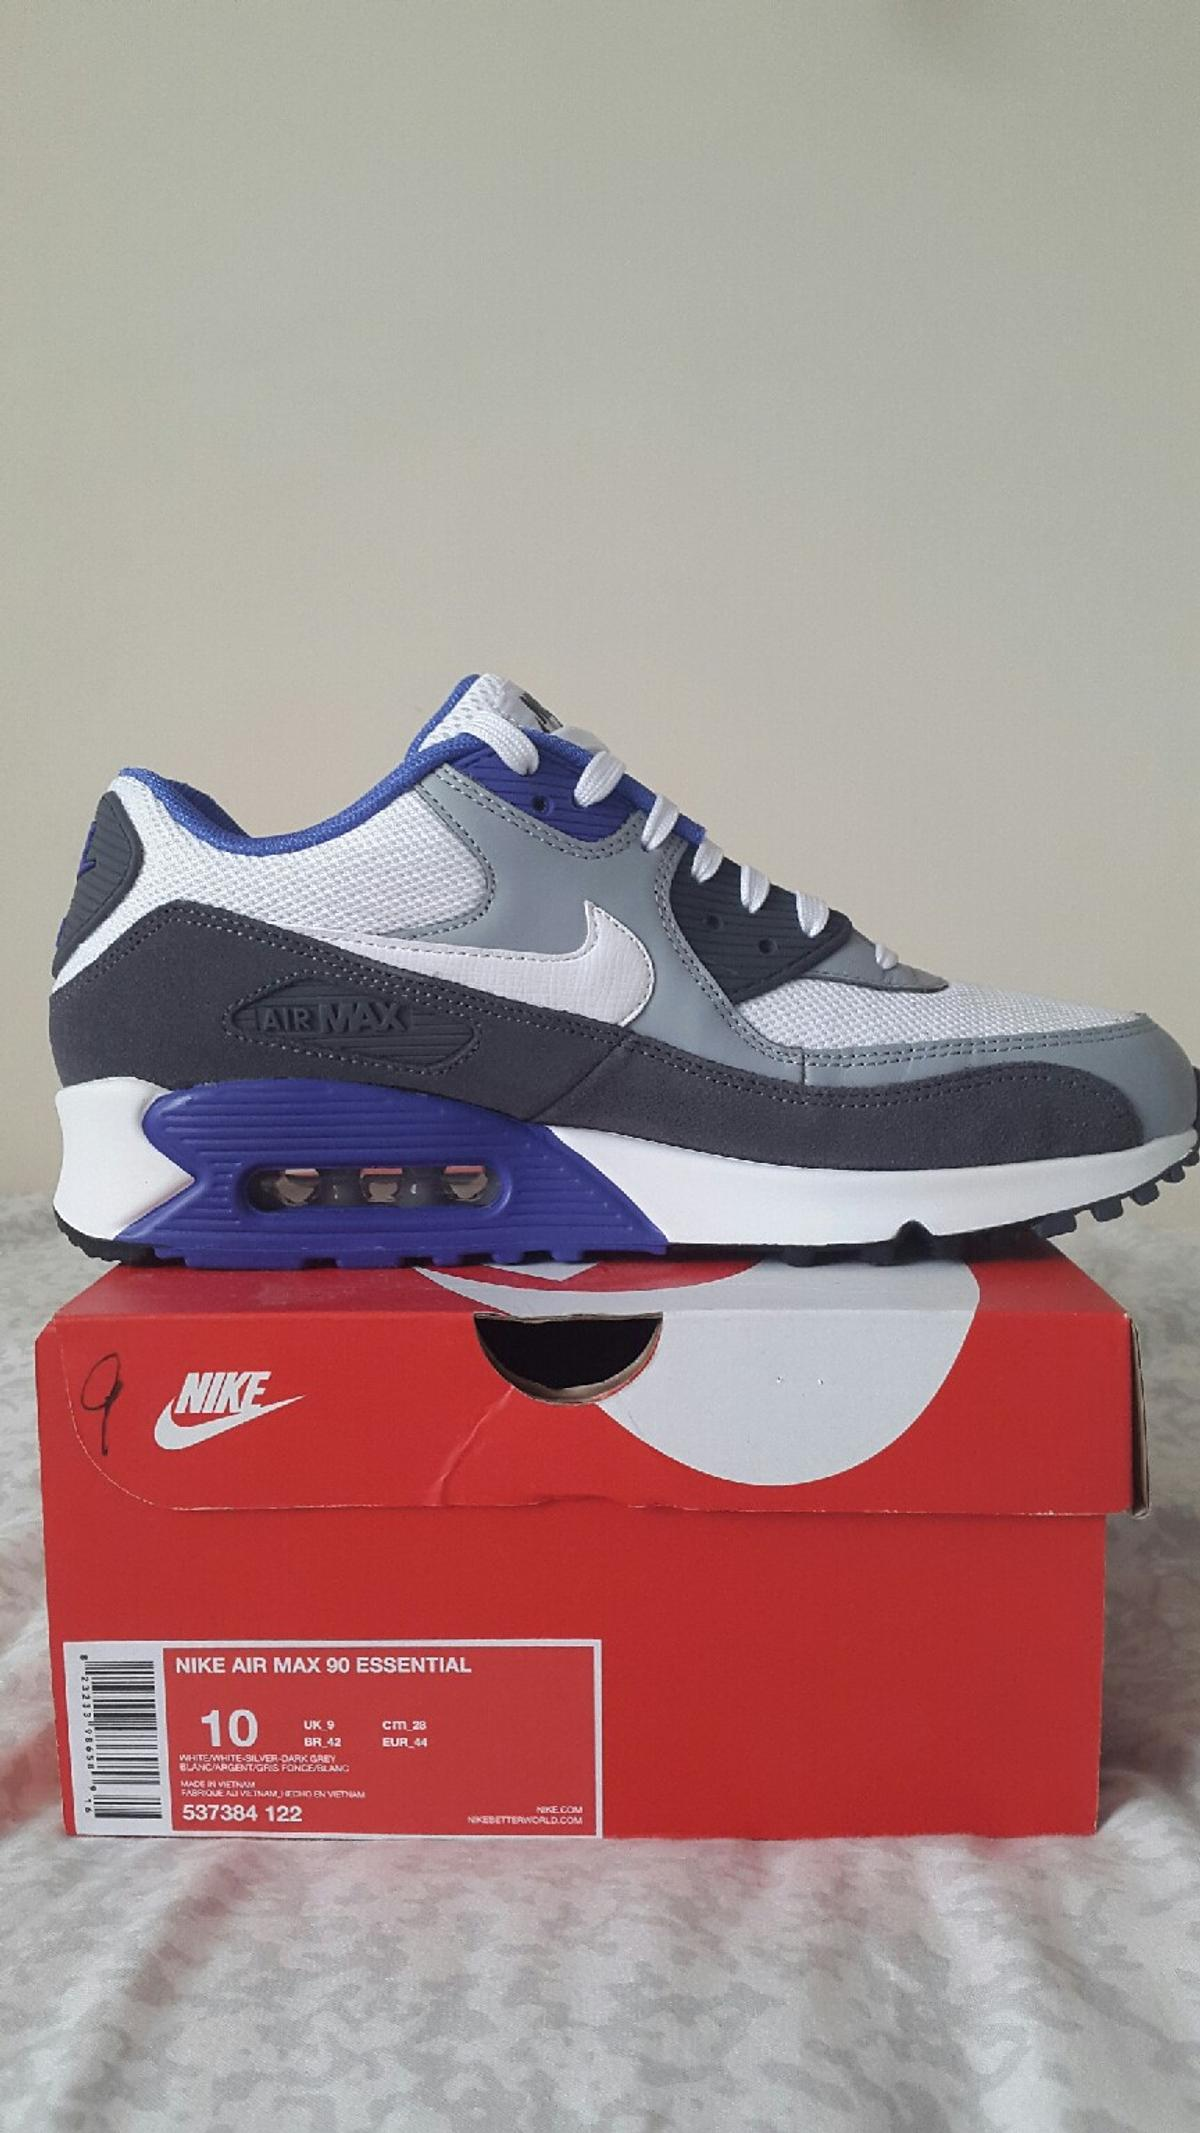 Nike Air Max 90 Essential and 50 similar items